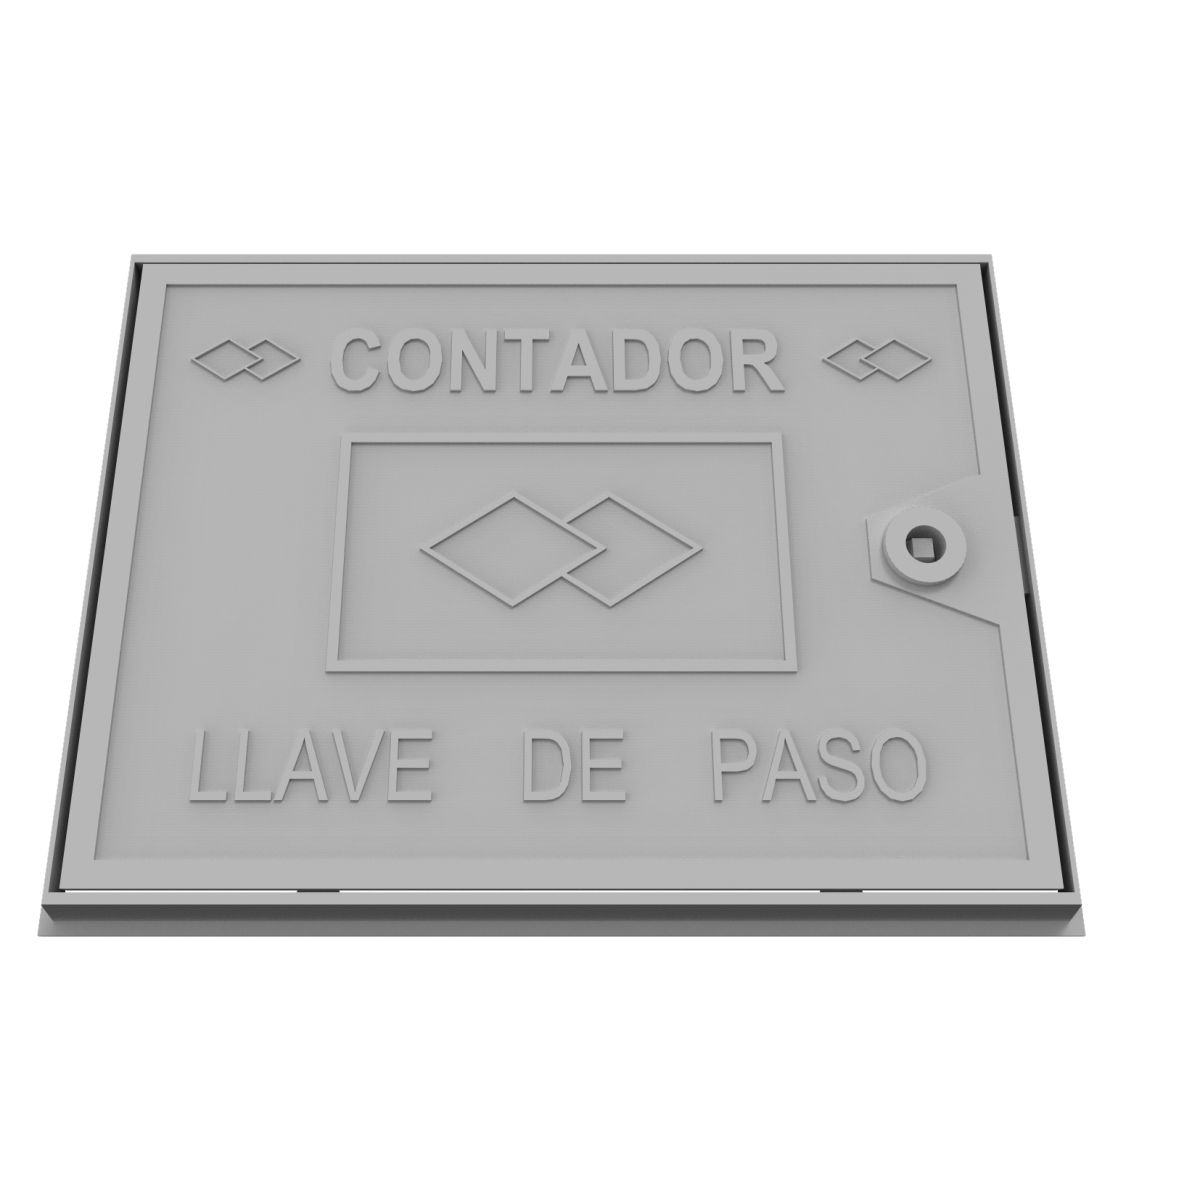 Aluminium wall trap door. Stopcock counter B-41C